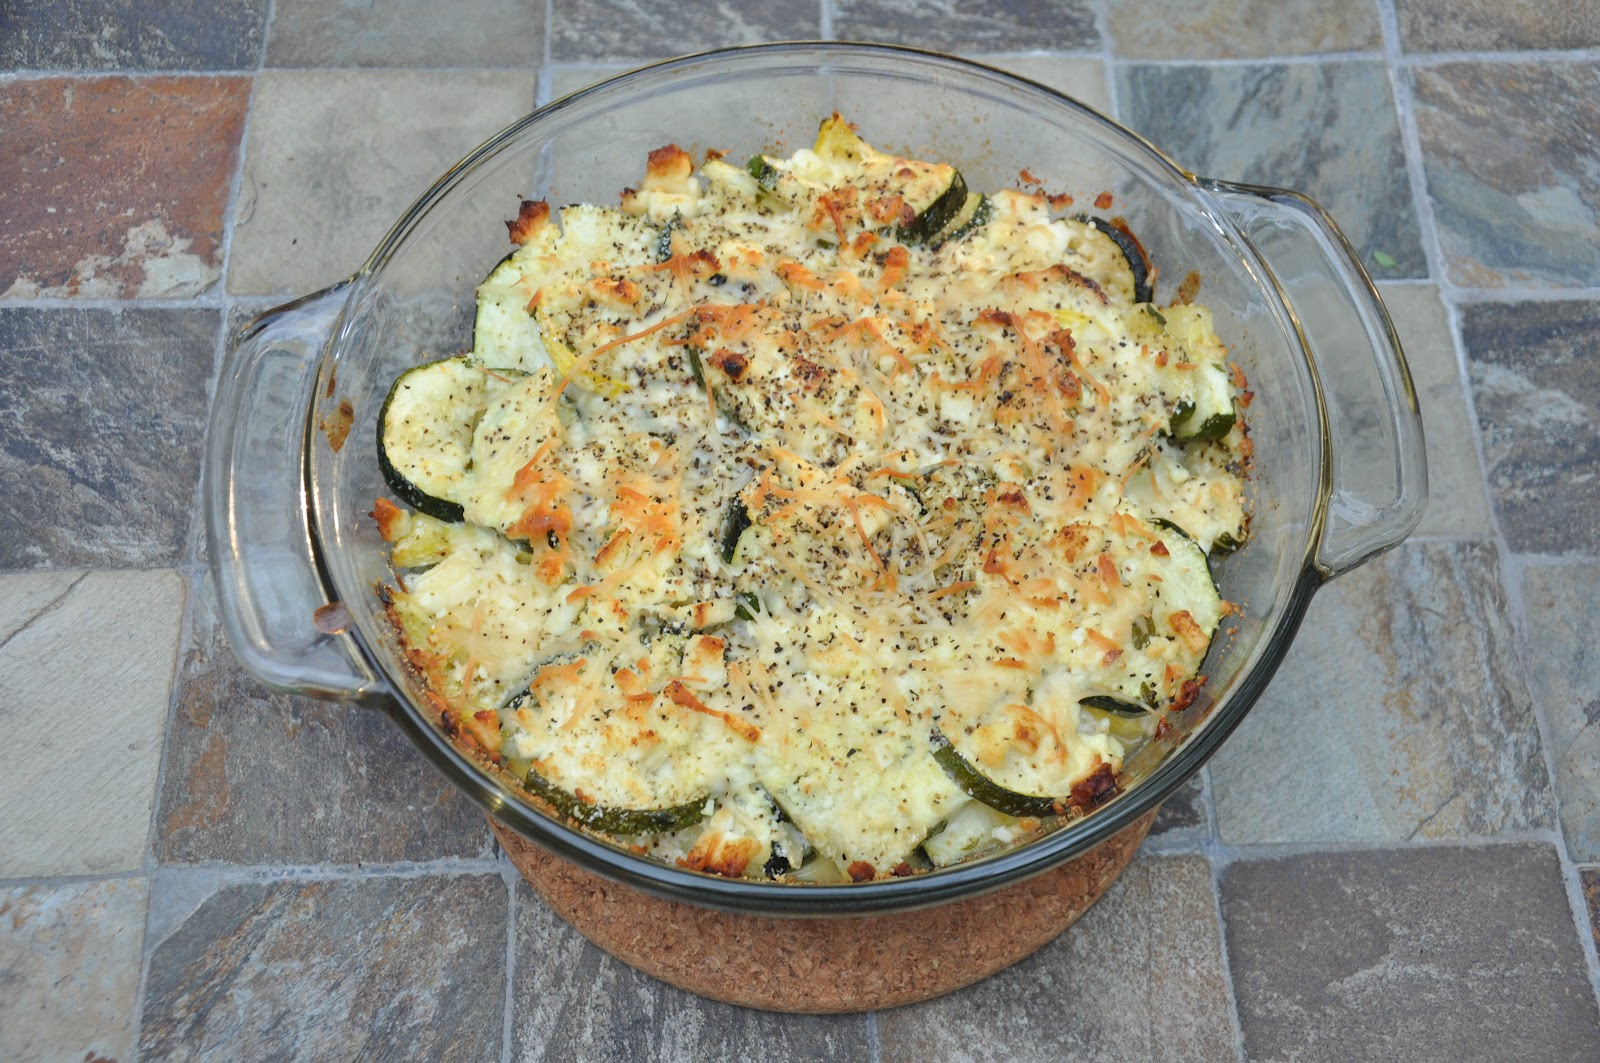 365 Days of DIY: Zucchini Bake with Feta and Fresh Thyme